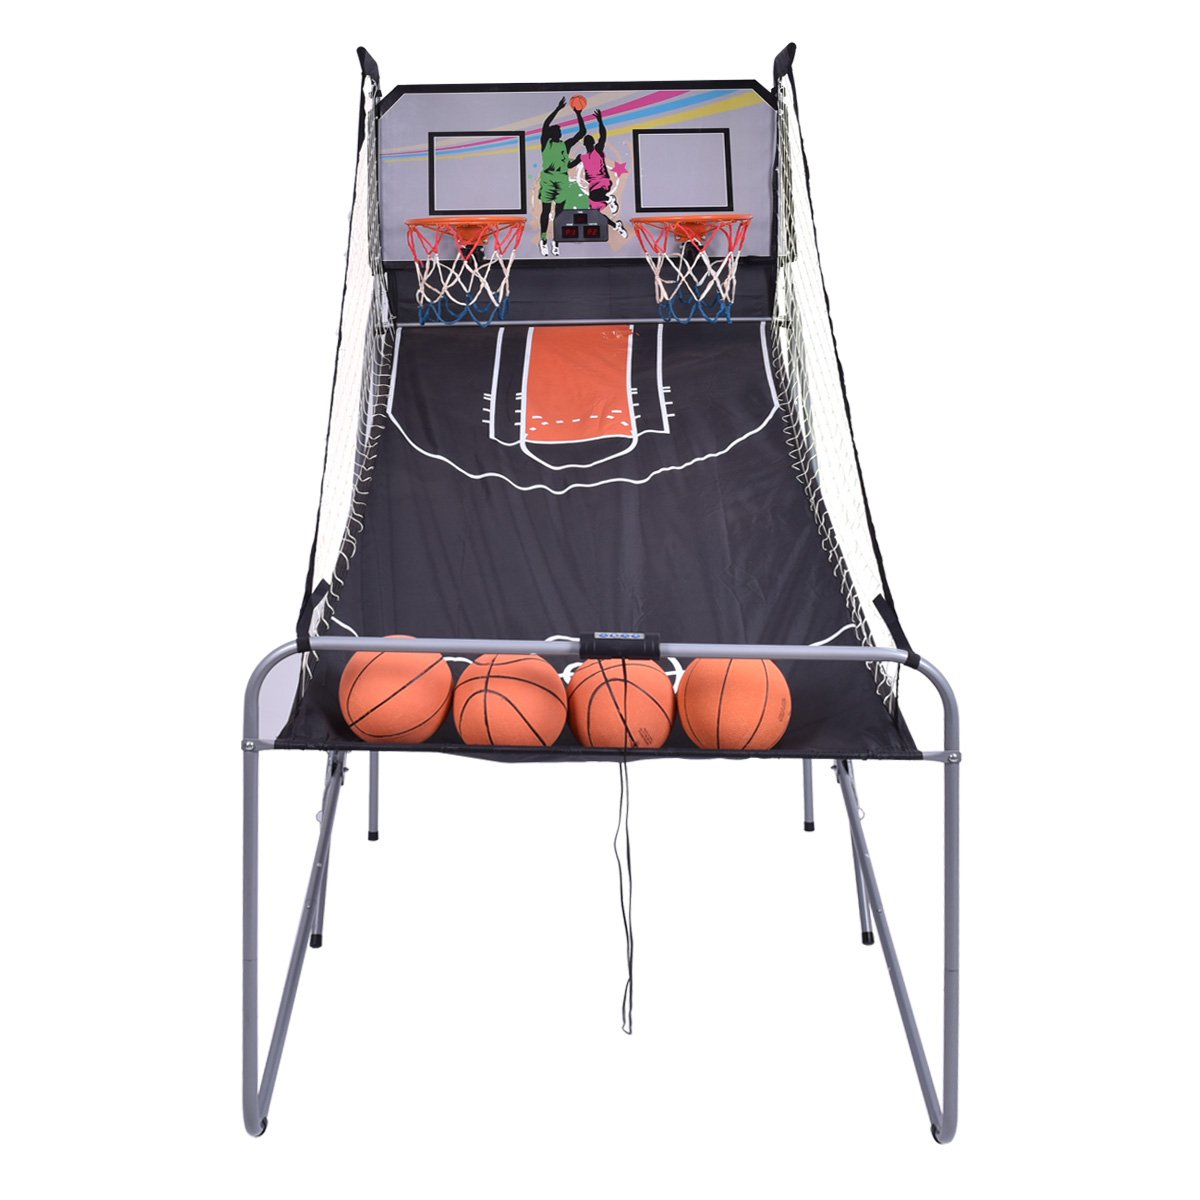 GYMAX Electronic Basketball Game, Double Shot Basketball Arcade Game 2 Players with 2 Rims 4 Balls